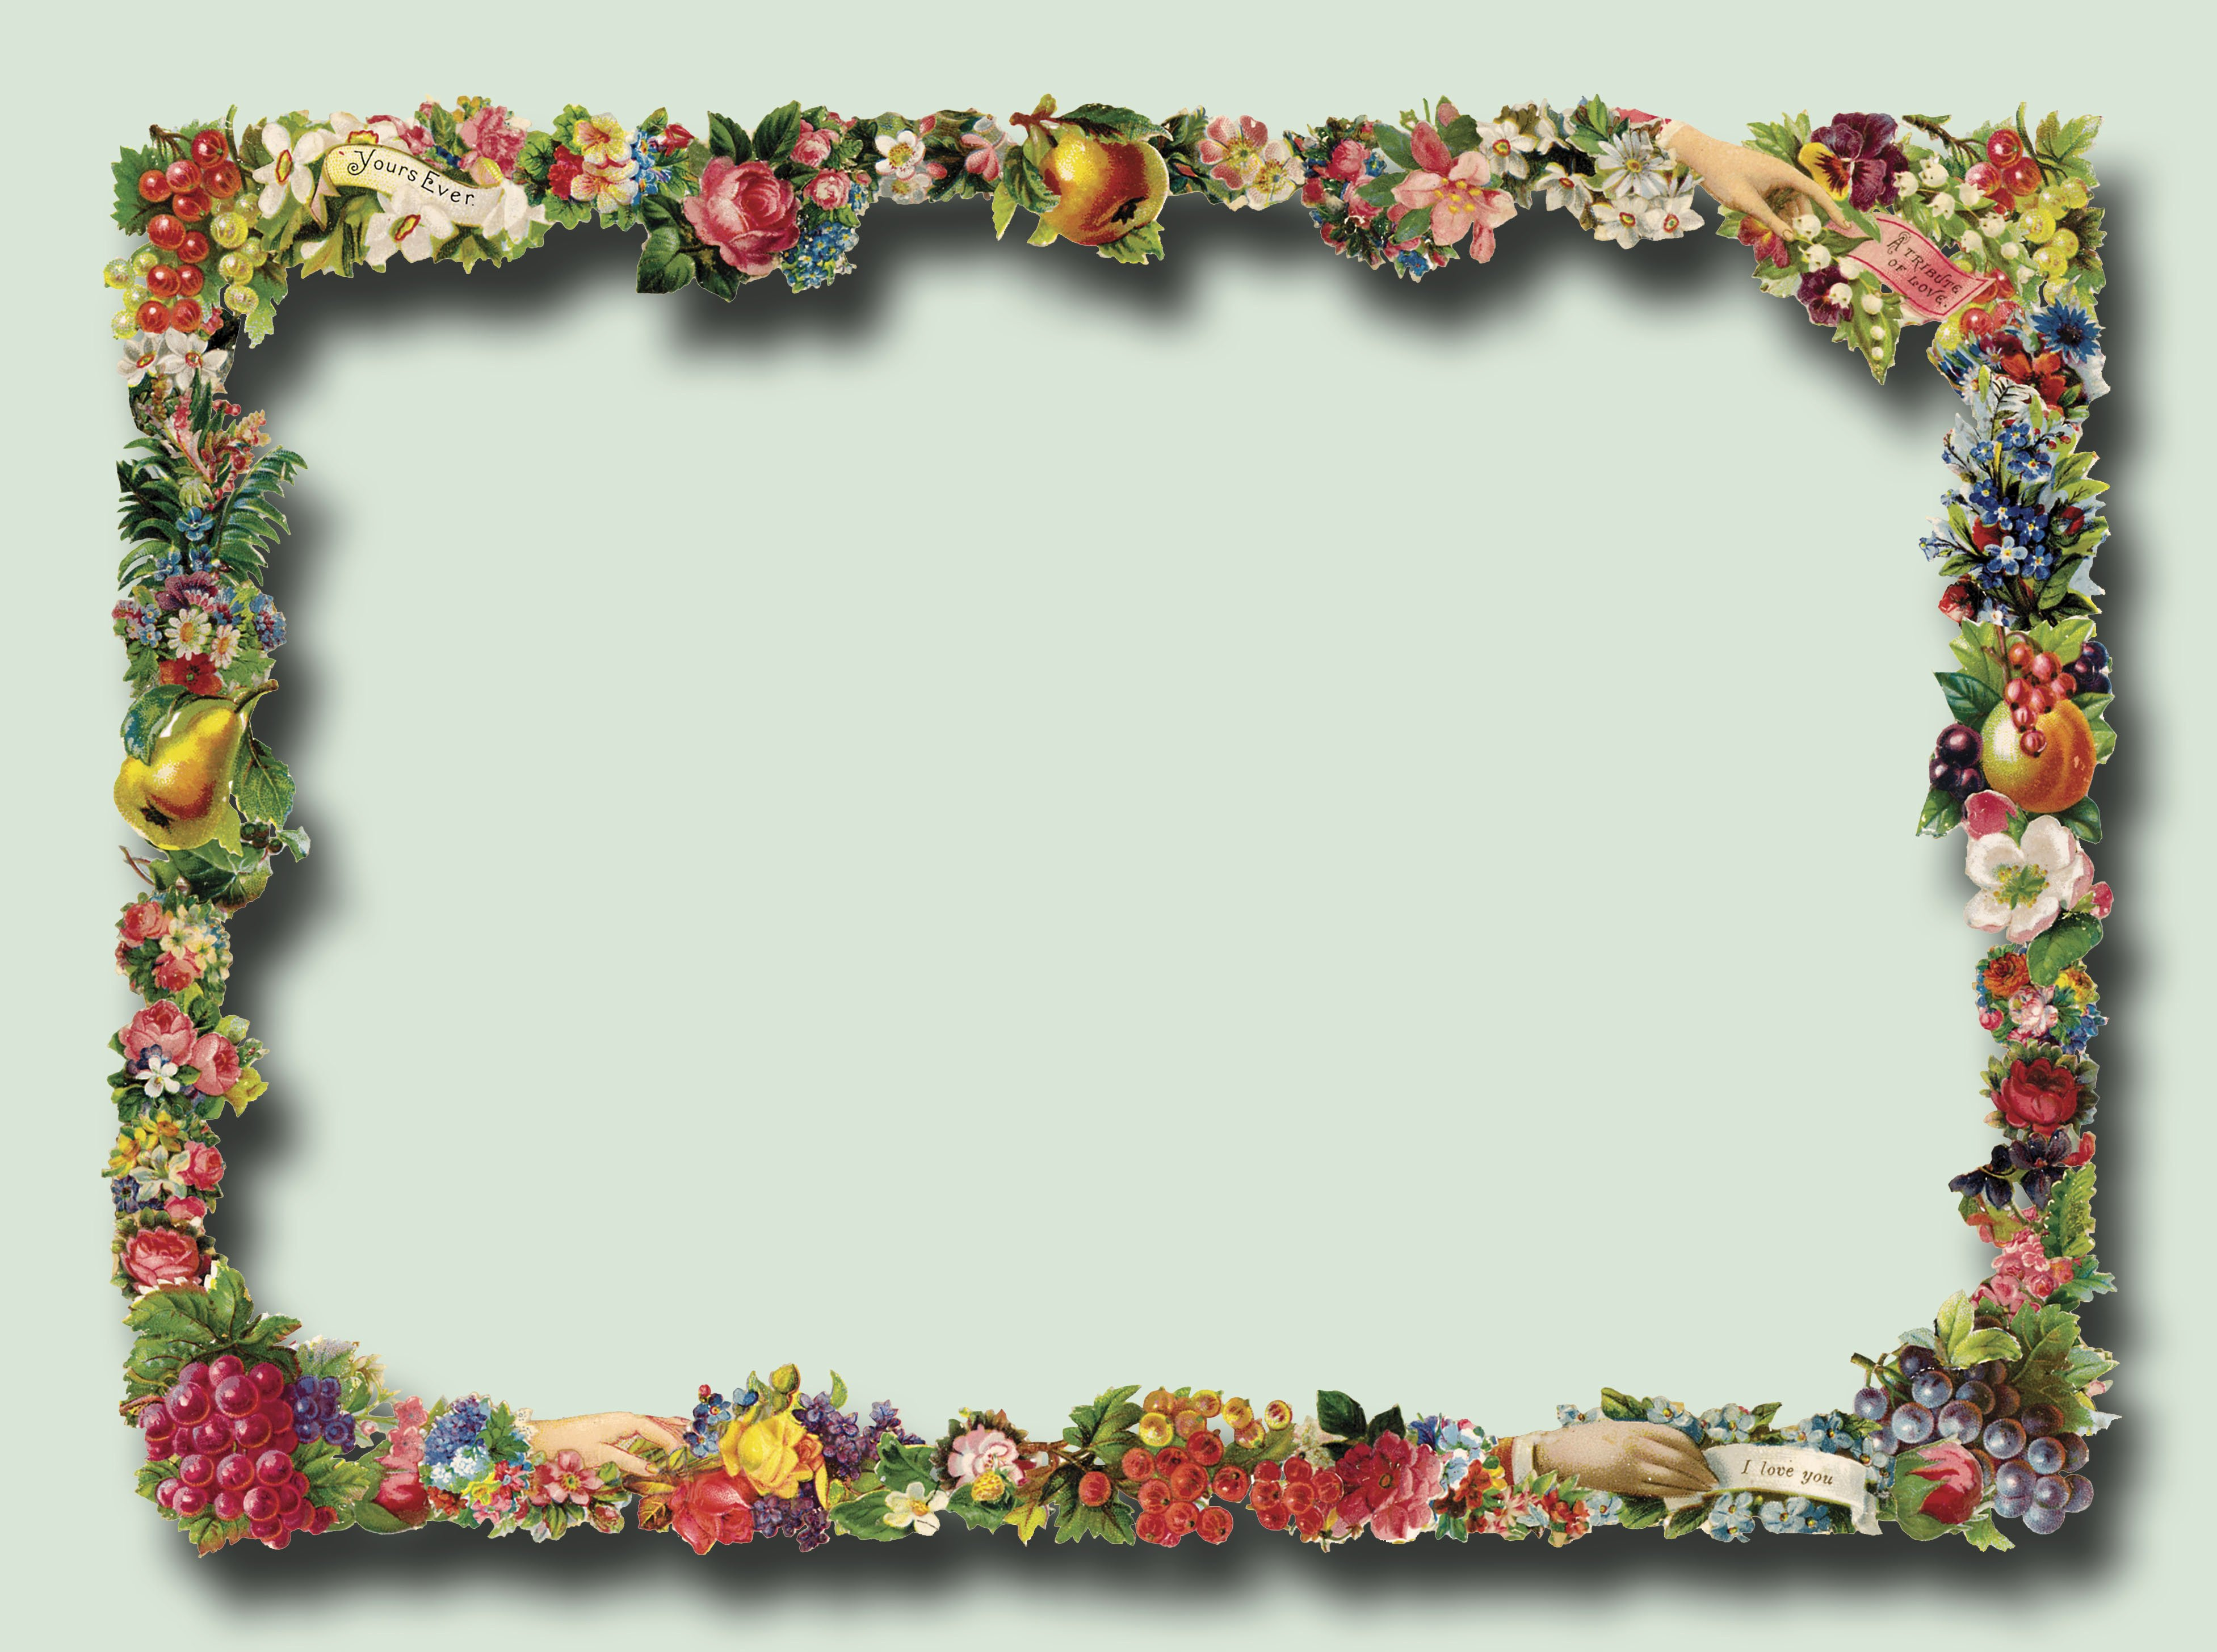 Photoshop Picture Frame Template Awesome 15 Picture Frame for Shop Psd Files Picture